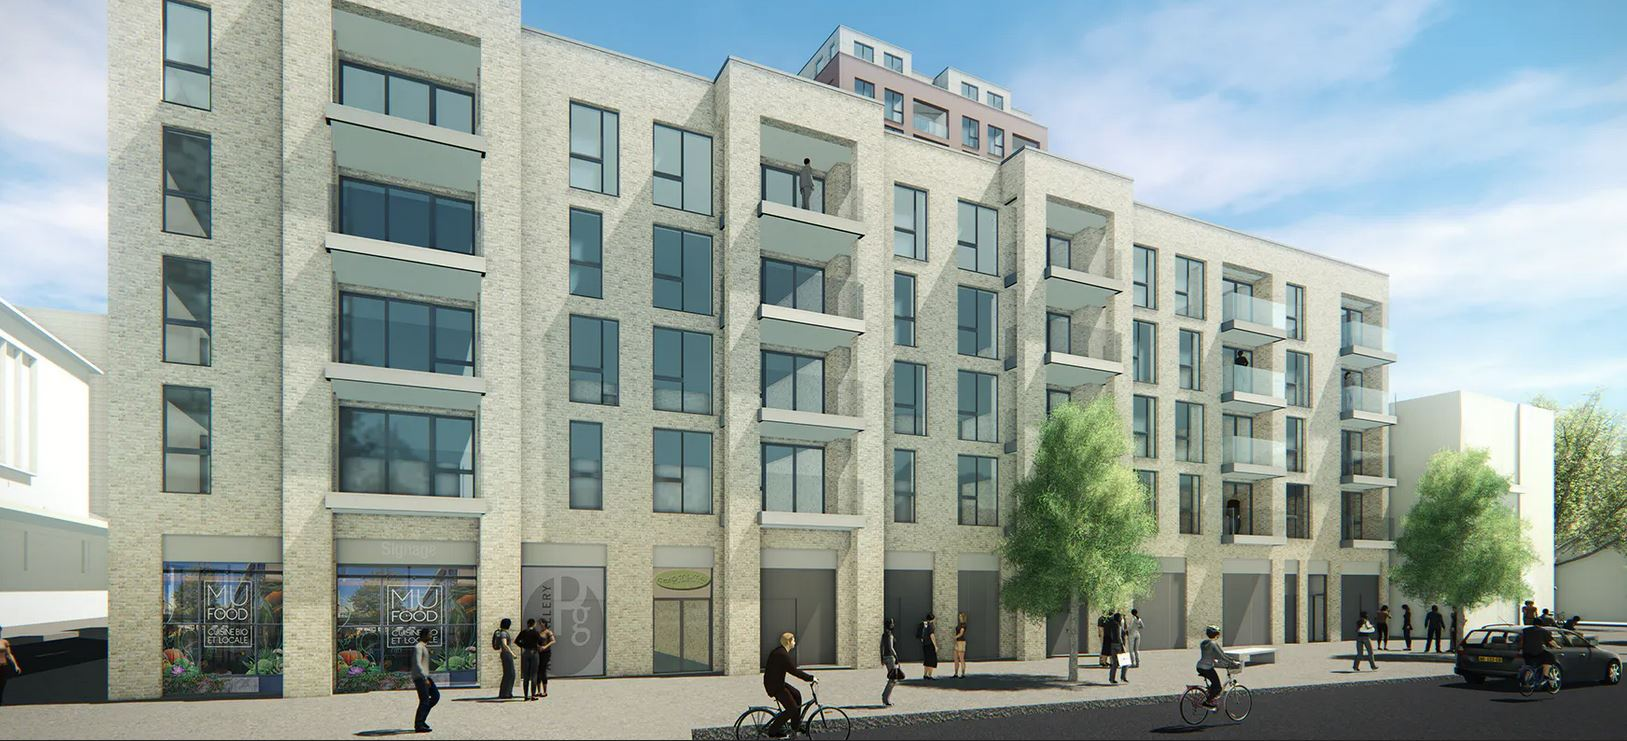 'BUILD TO RENT' CONTINUES APACE IN SOUTHAMPTON